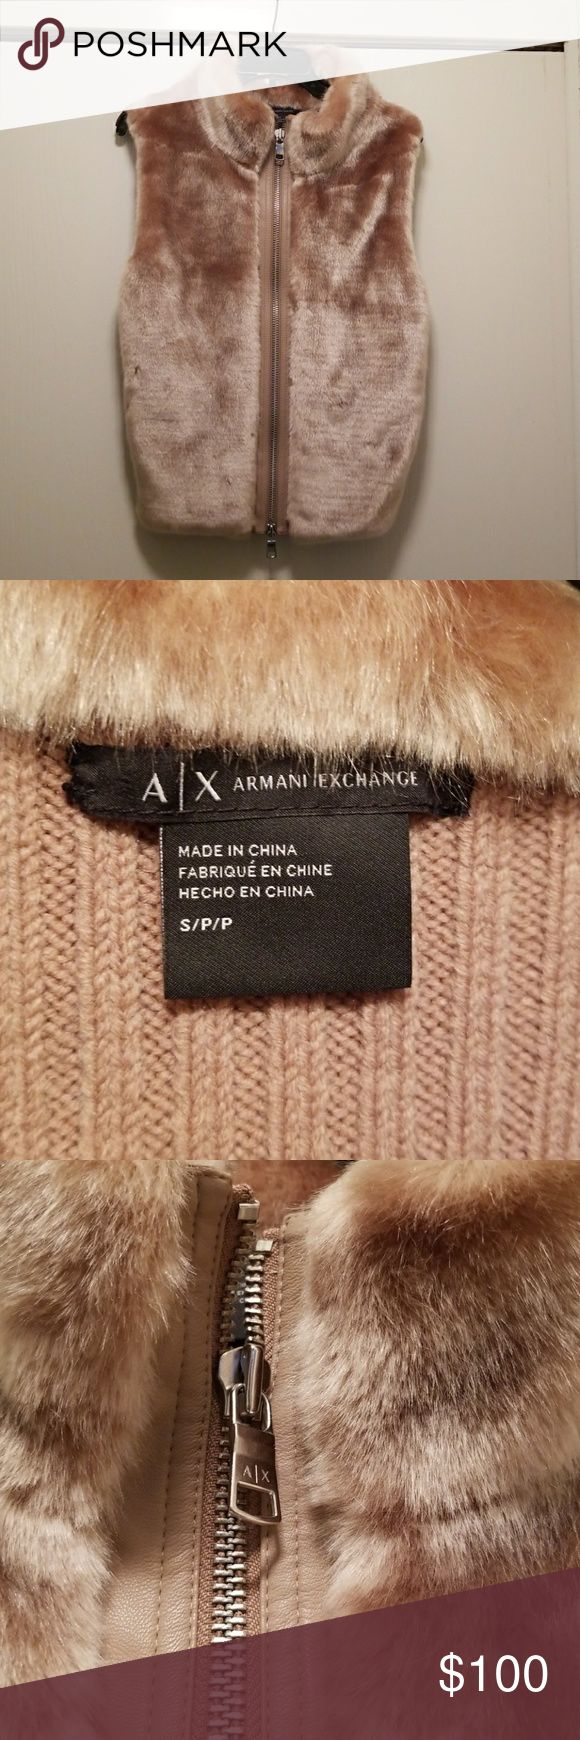 A/X Armani Exchange Faux Fur Vest Size Small Guc no damage or stains.  This vest is so stylish and soft. The zipper is lined with leather and has a top down bottom up zipper. The back is a sweater material.                                                 Armpit to armpit is 20 in. Length 25 in Armani Exchange Jackets & Coats Vests